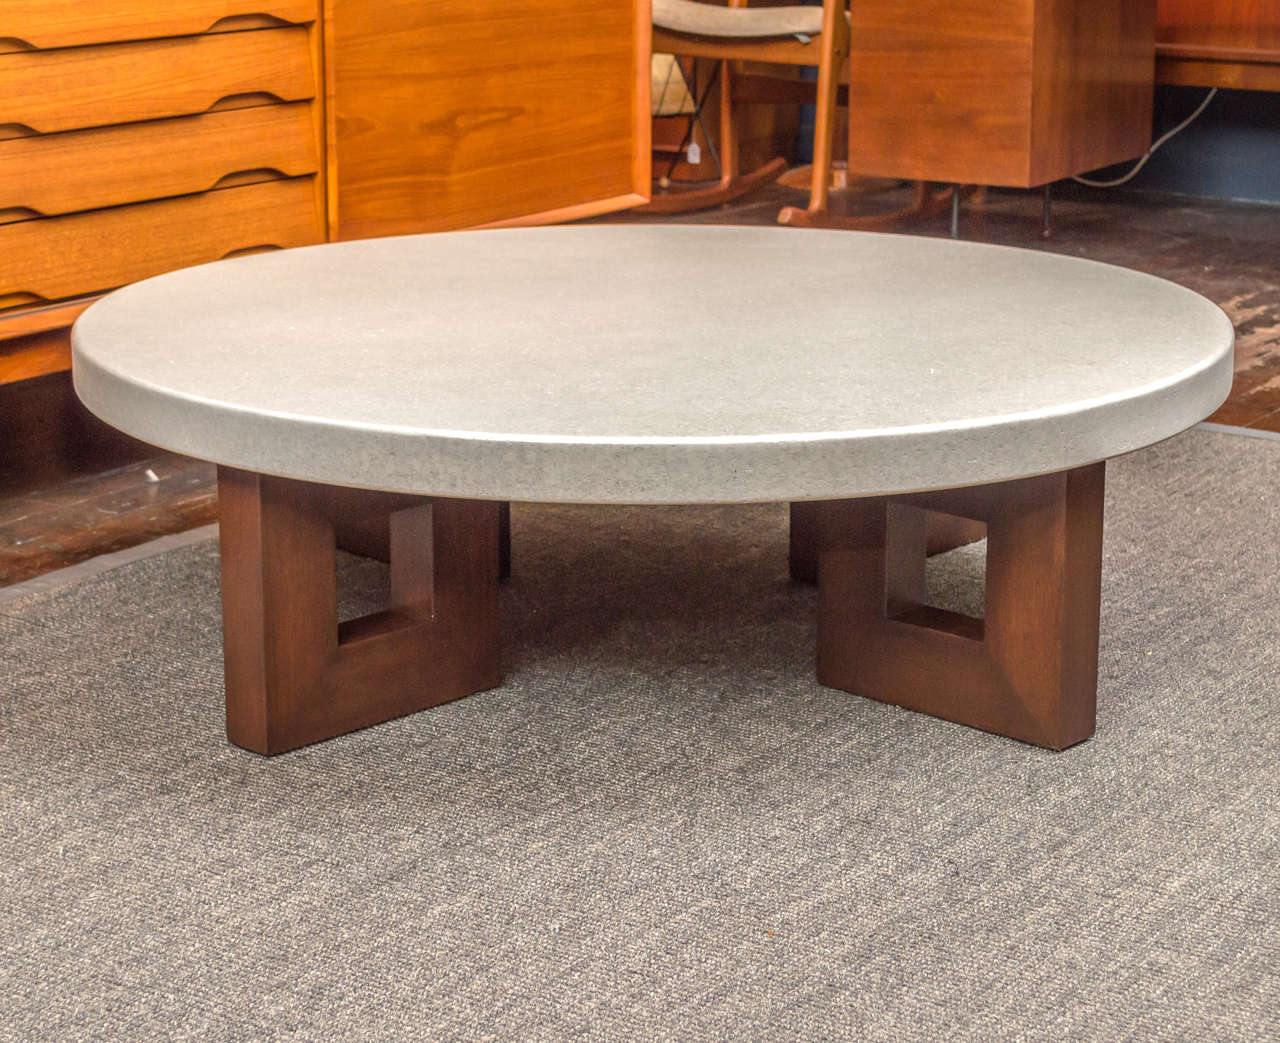 Paul Frankl Design Coffee Table For Johnson Furniture Co Comprised Of A Cork Laminate On